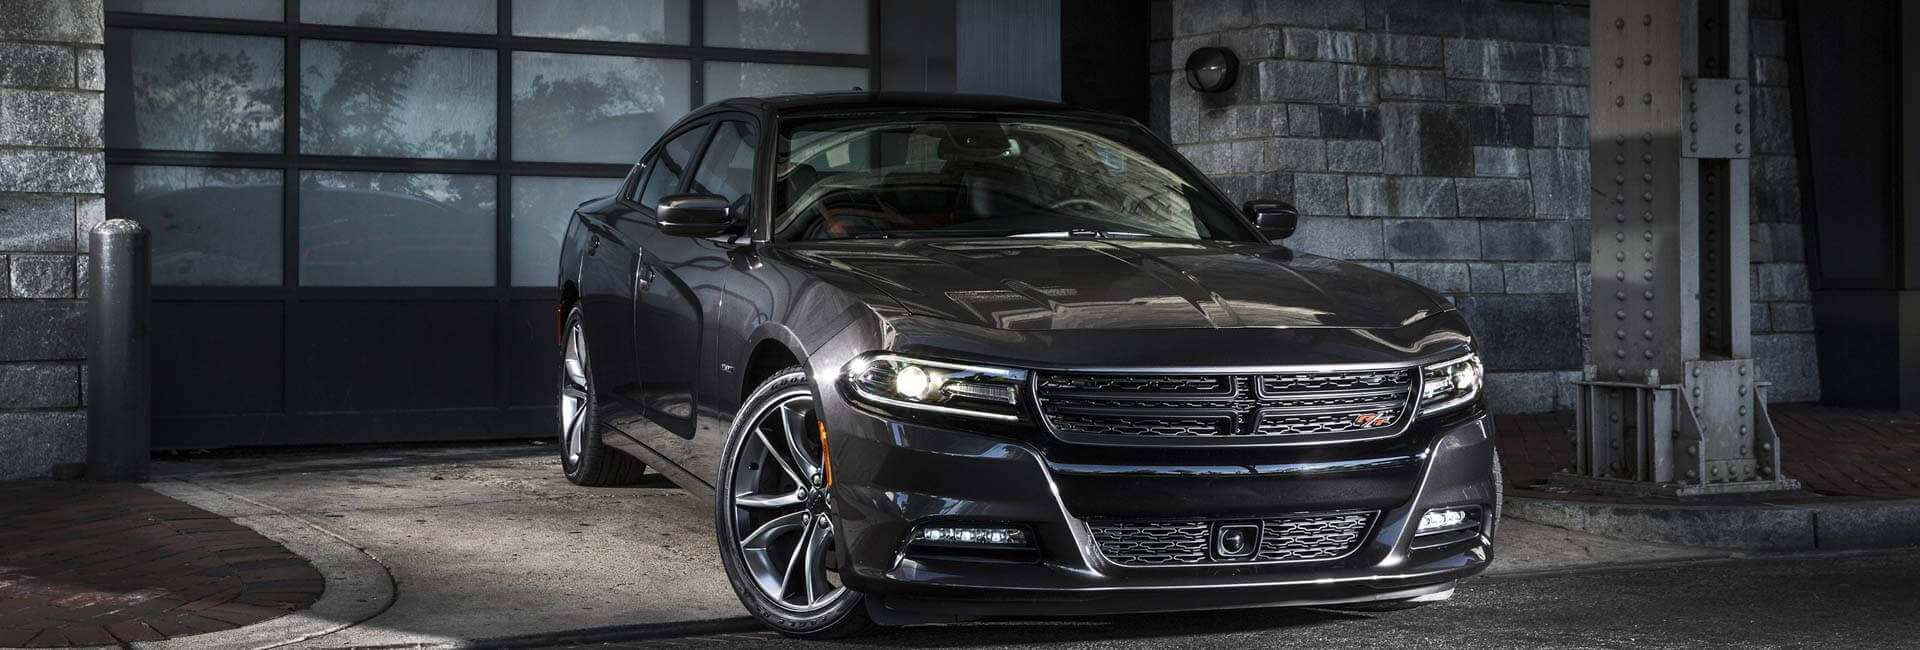 2015 Dodge Charger Rt Hemi Road Test Review Blog Of Speedblog Of Speed